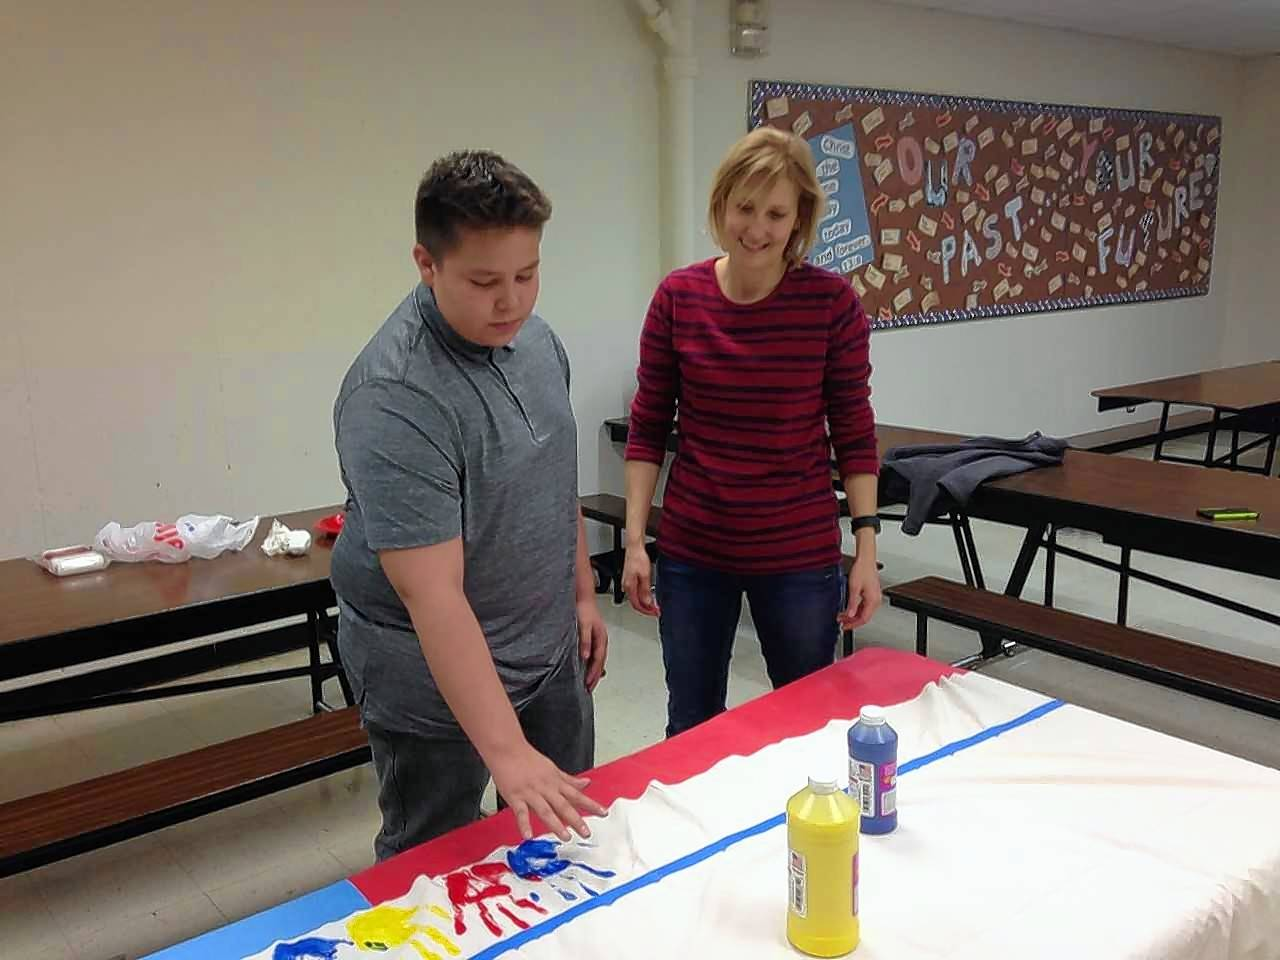 St. John Lutheran School in Elgin celebrated its 150th anniversary this year. Ethan Zimmerman, 13, of Elgin places his handprint on an 150th anniversary banner with the help of parent volunteer Tracy Schatz.